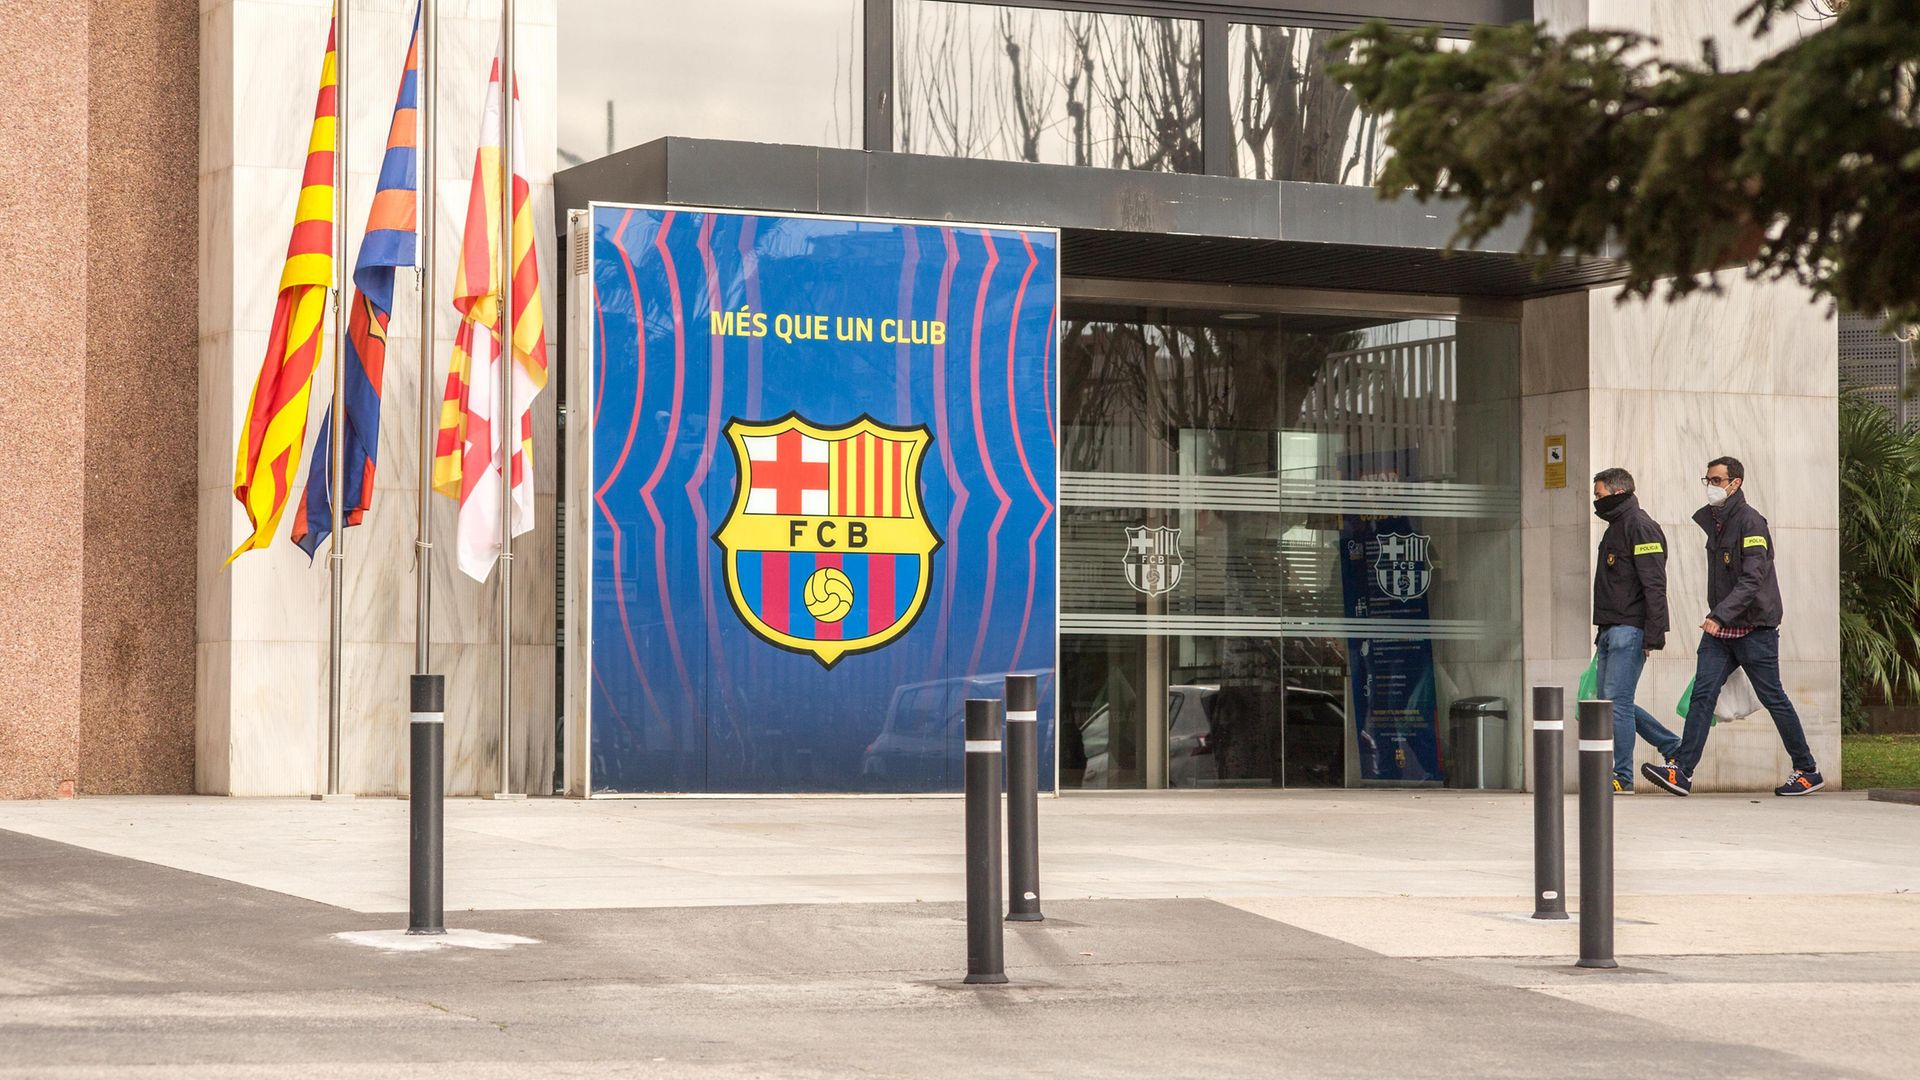 Police officers are seen entering FC Barcelona's office on March 1, 2021 as part of an ongoing investigation into alleged corruption that led to the arrest of former club president Josep Maria Bartomeu - Credit: SOPA Images/LightRocket via Gett